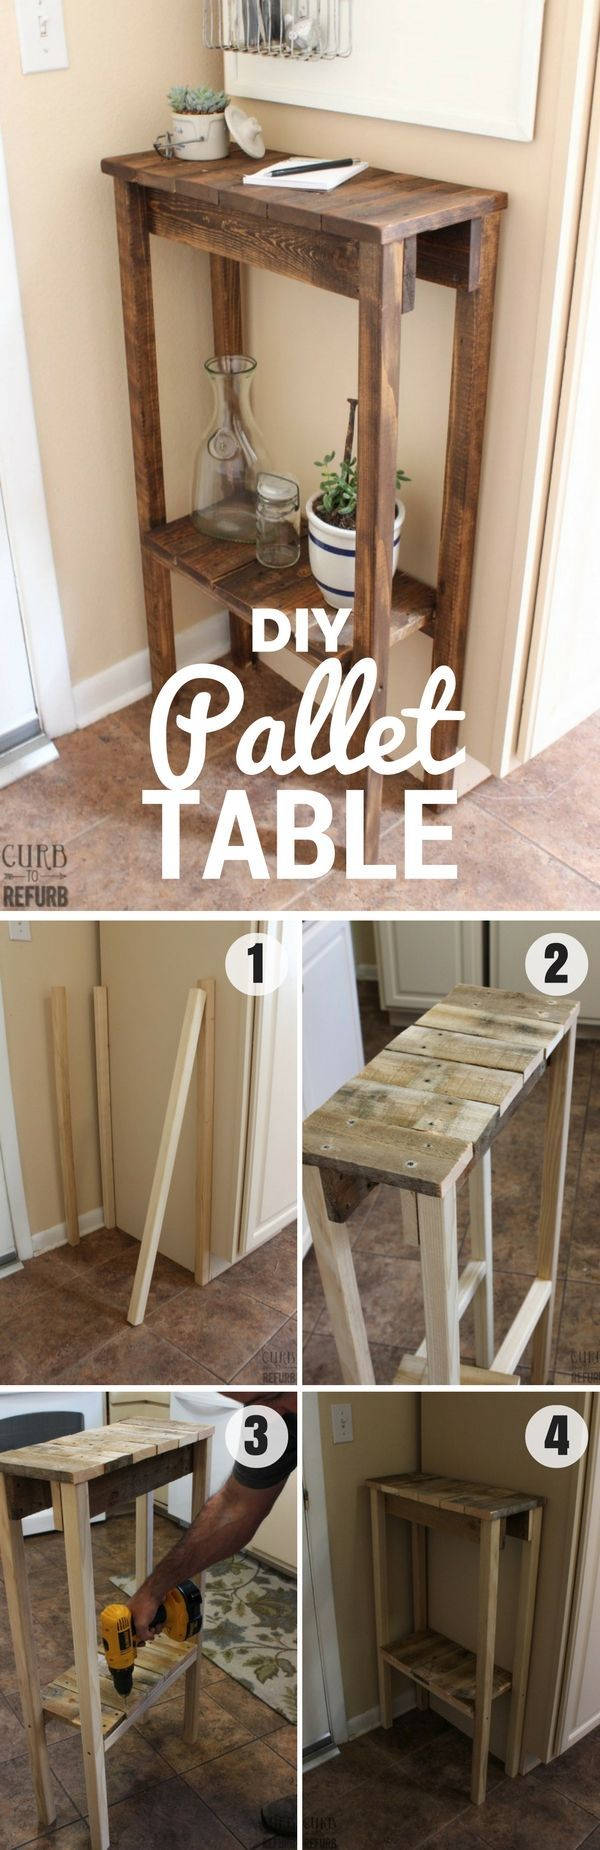 Check out how to build this easy DIY Pallet Table /istandarddesign/                                                                                                                                                                                 More